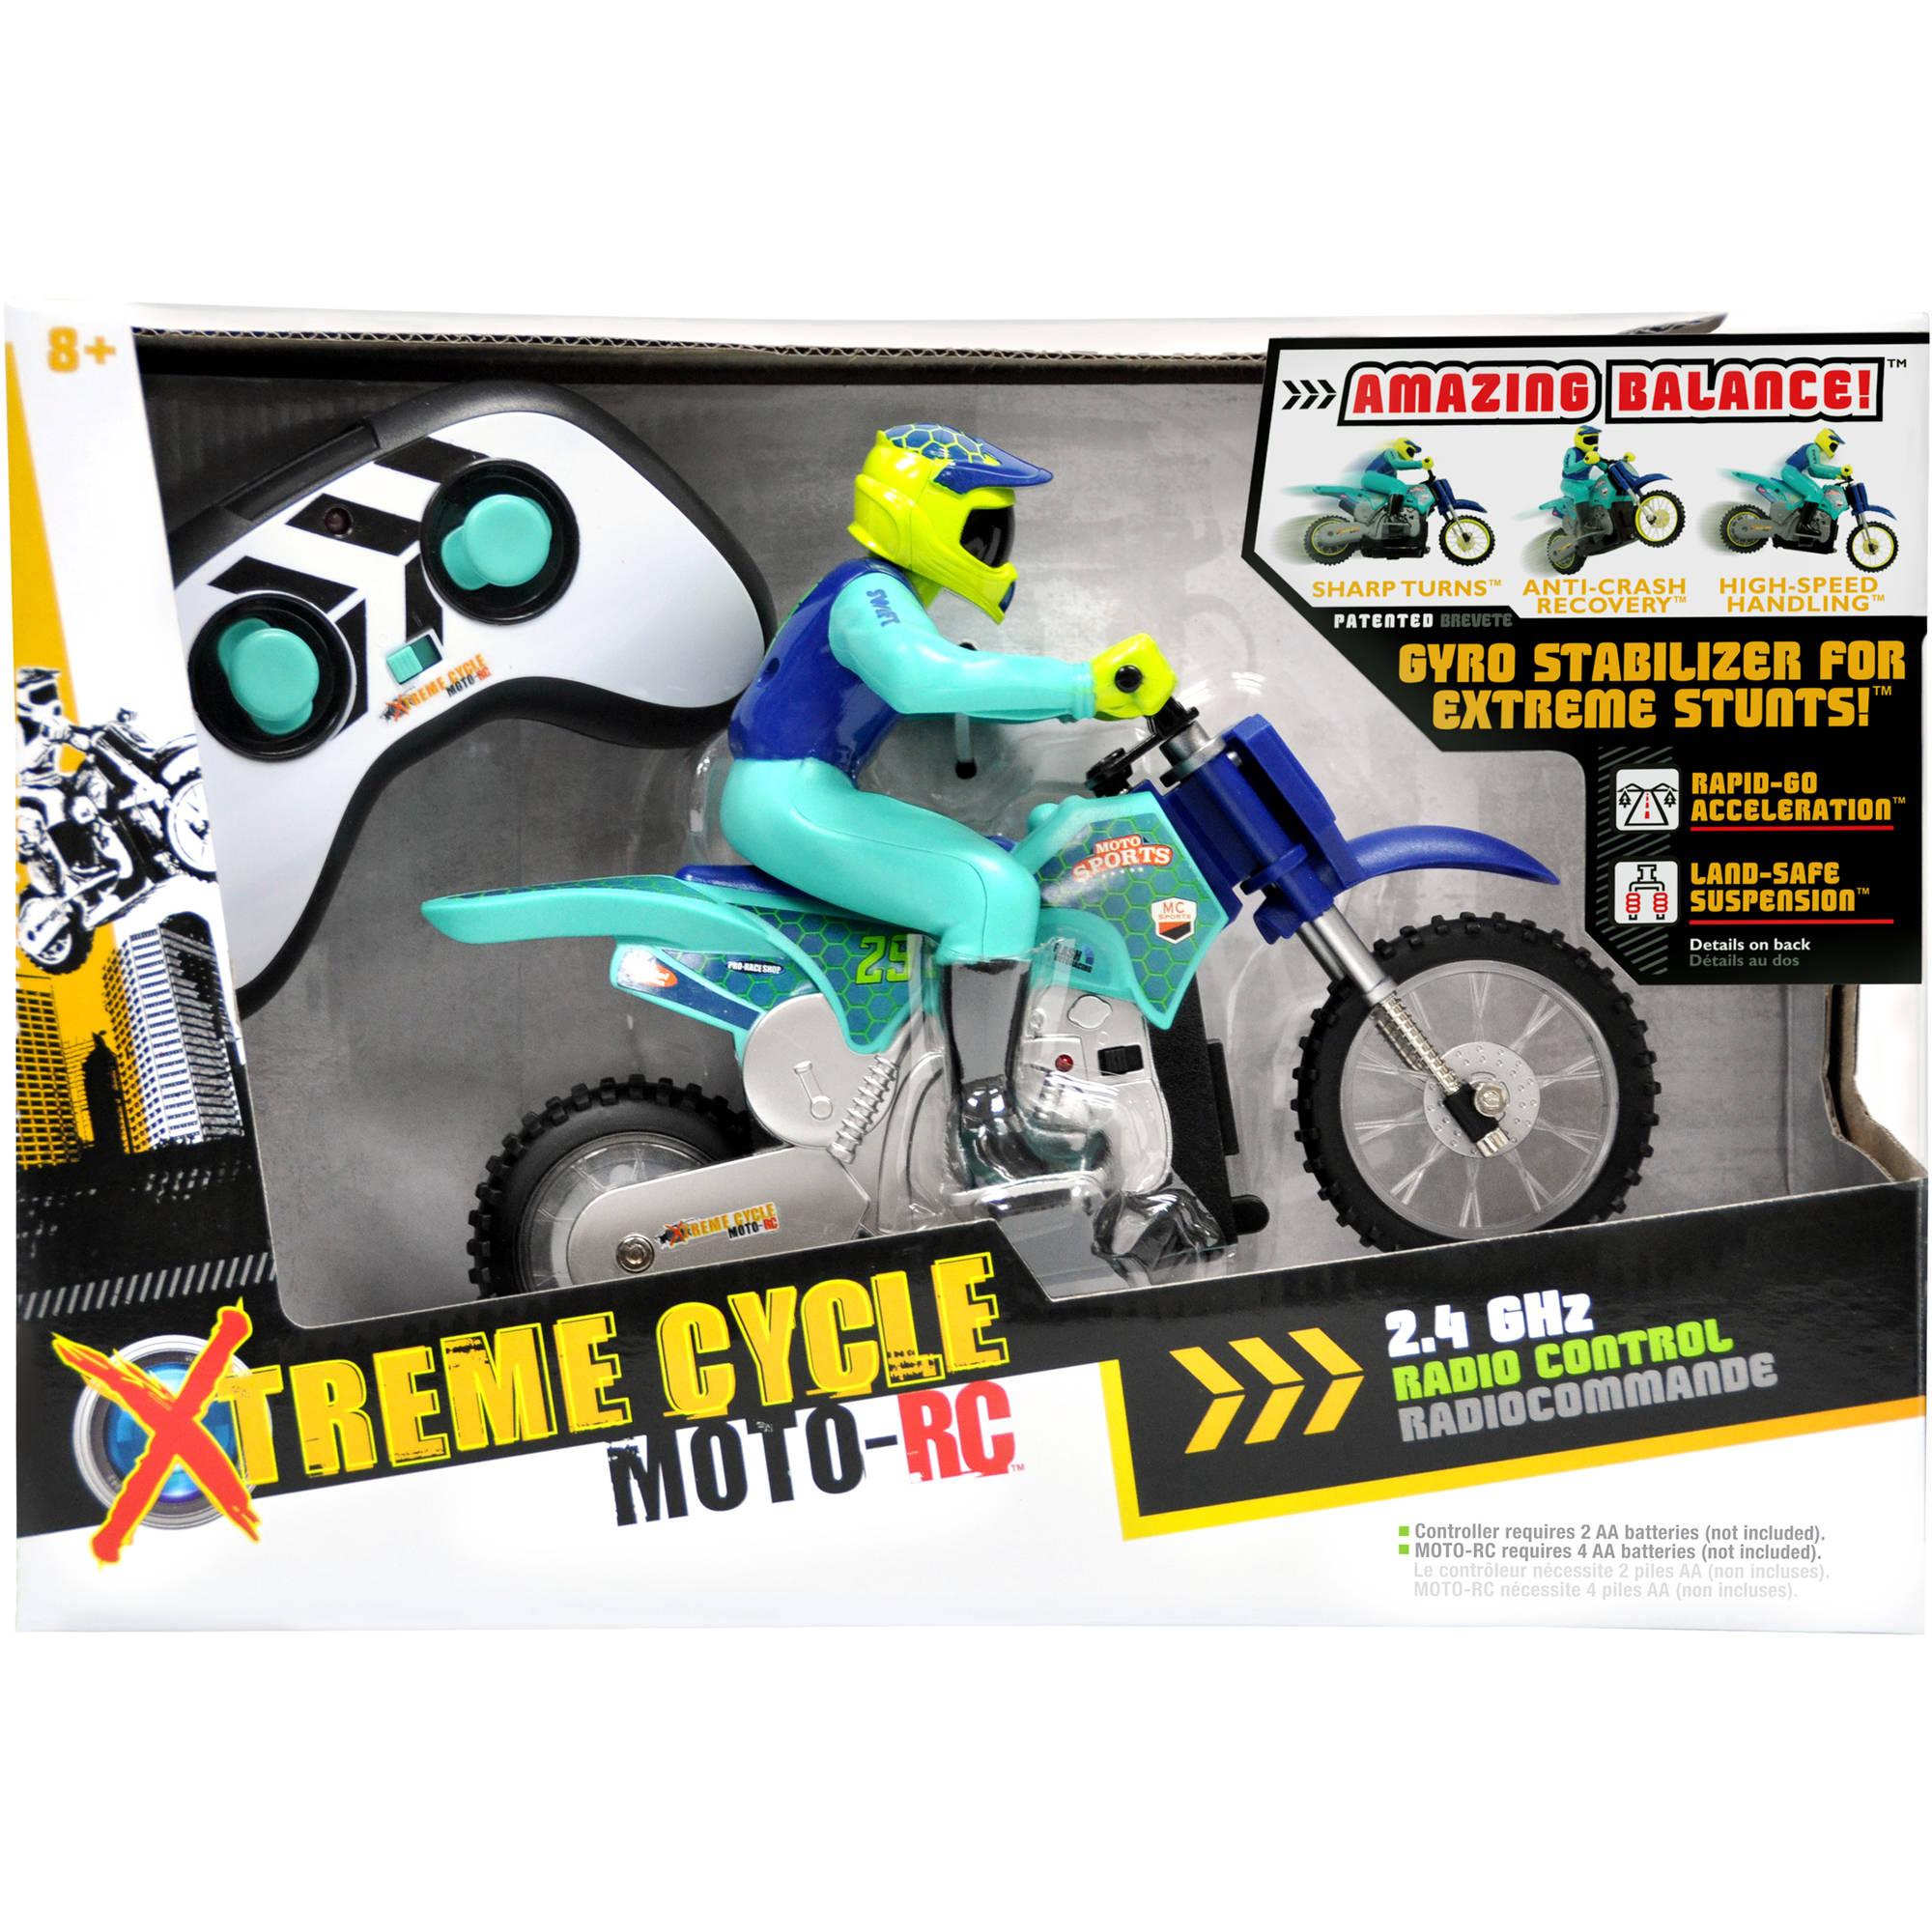 xtreme cycle moto-rc, red